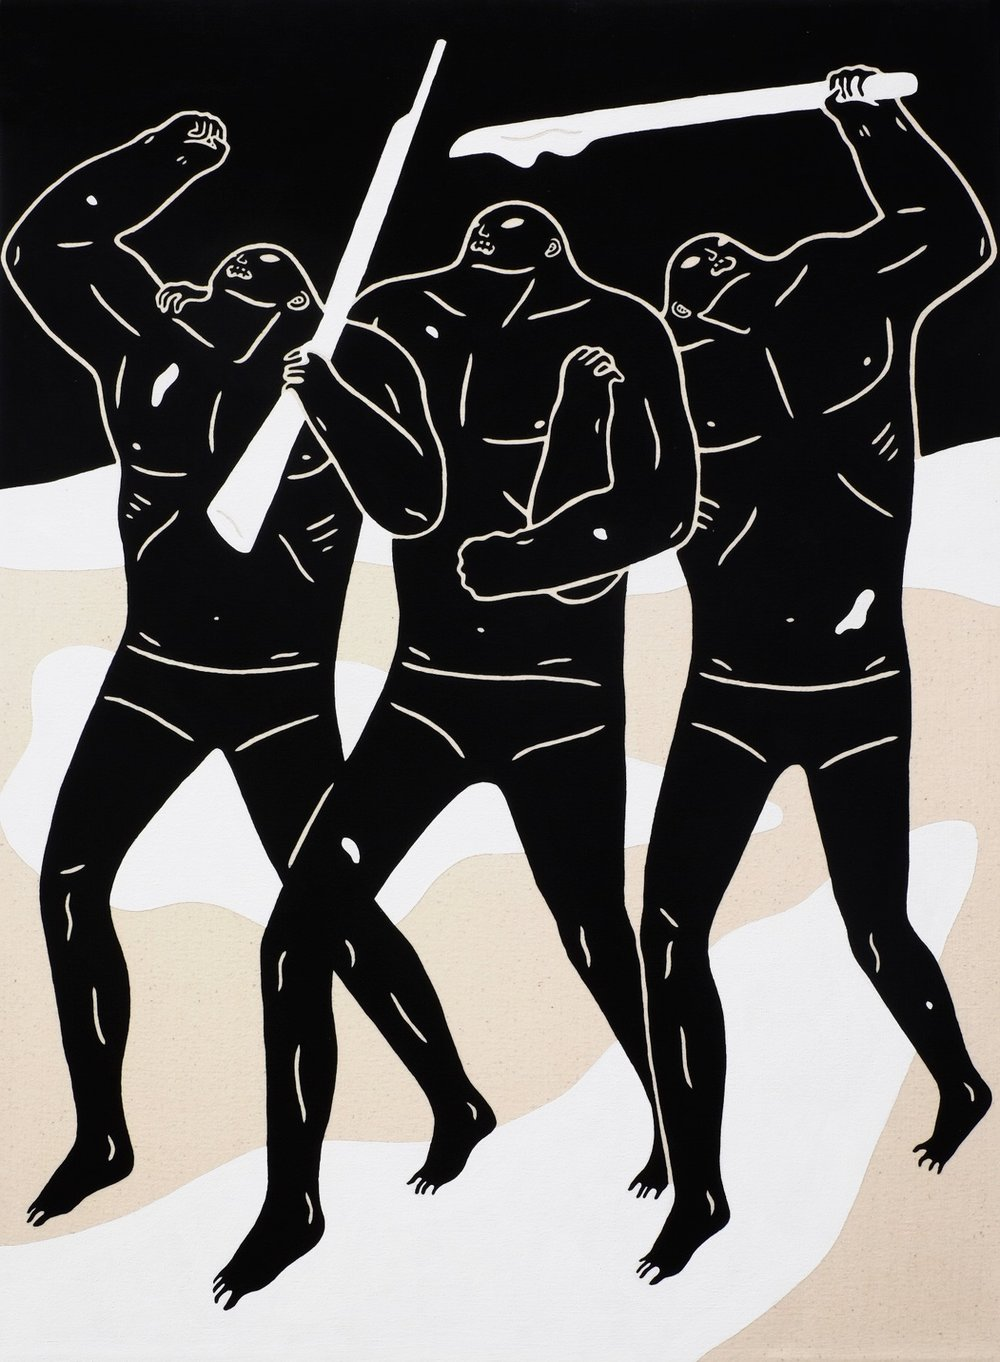 cleon-peterson-bench-talk-podcast-13.jpg